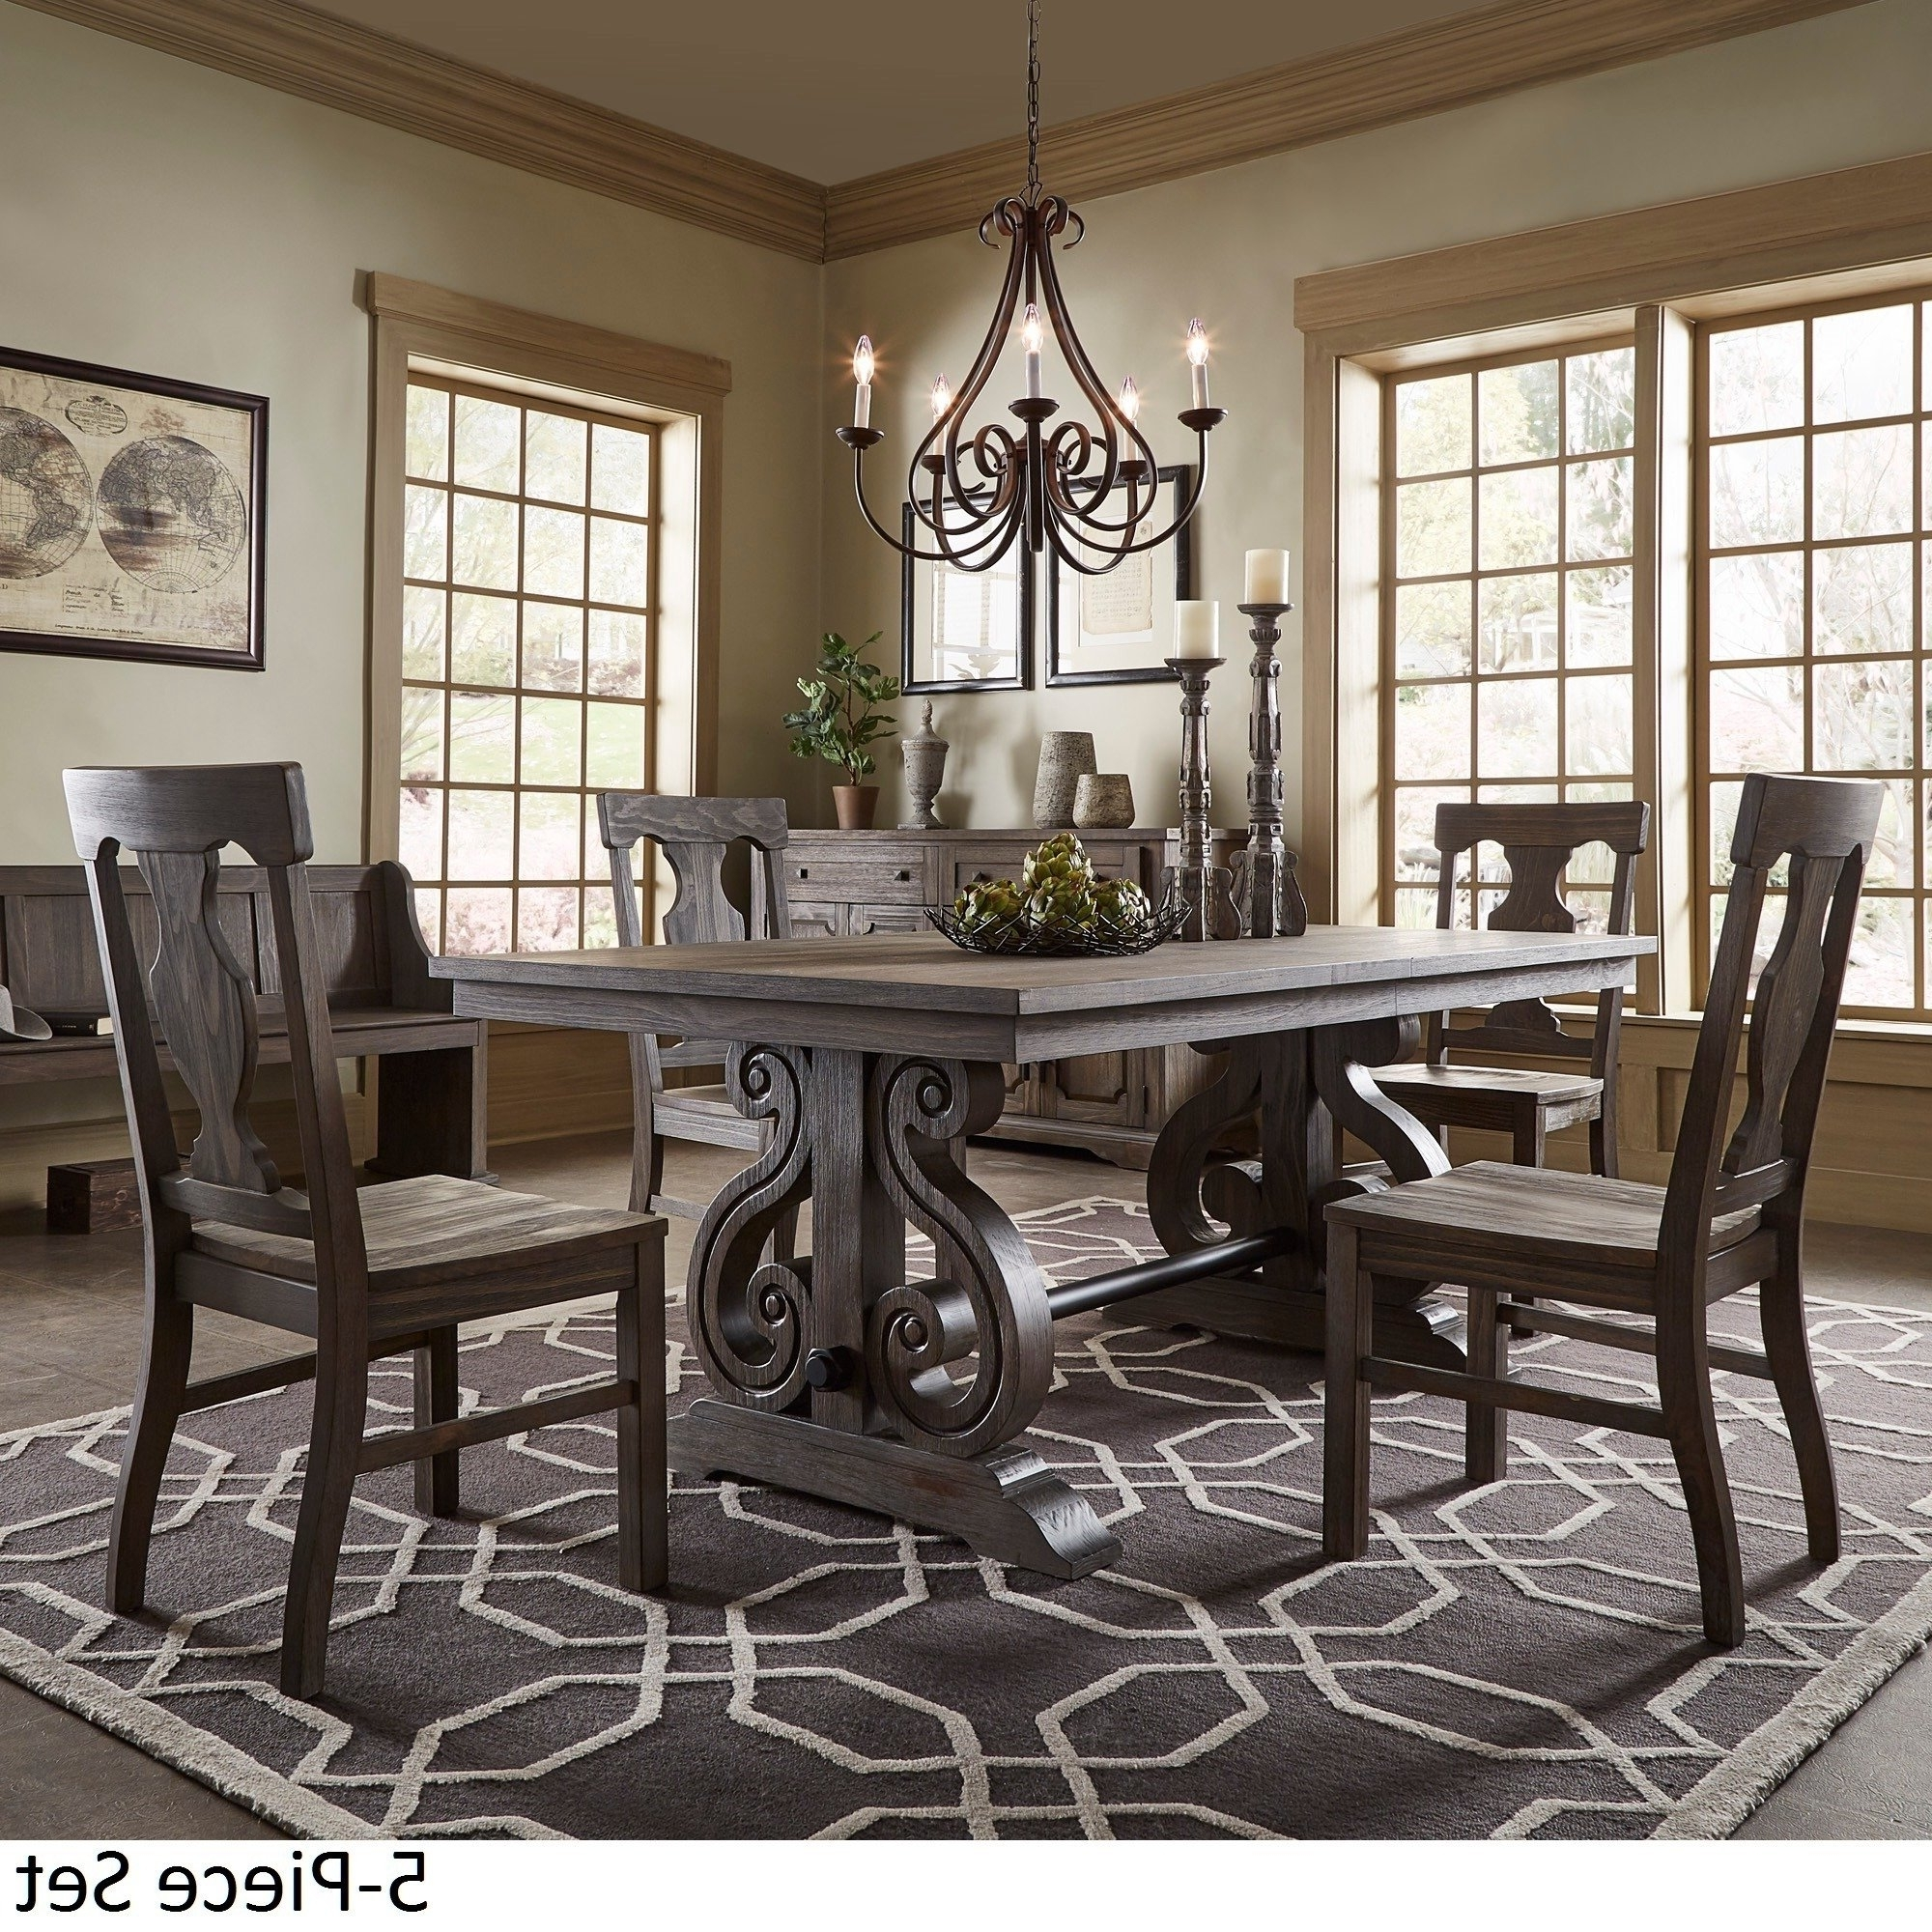 Most Popular Extendable Dining Table Sets Intended For Shop Rowyn Wood Extendable Dining Table Setinspire Q Artisan (View 18 of 25)